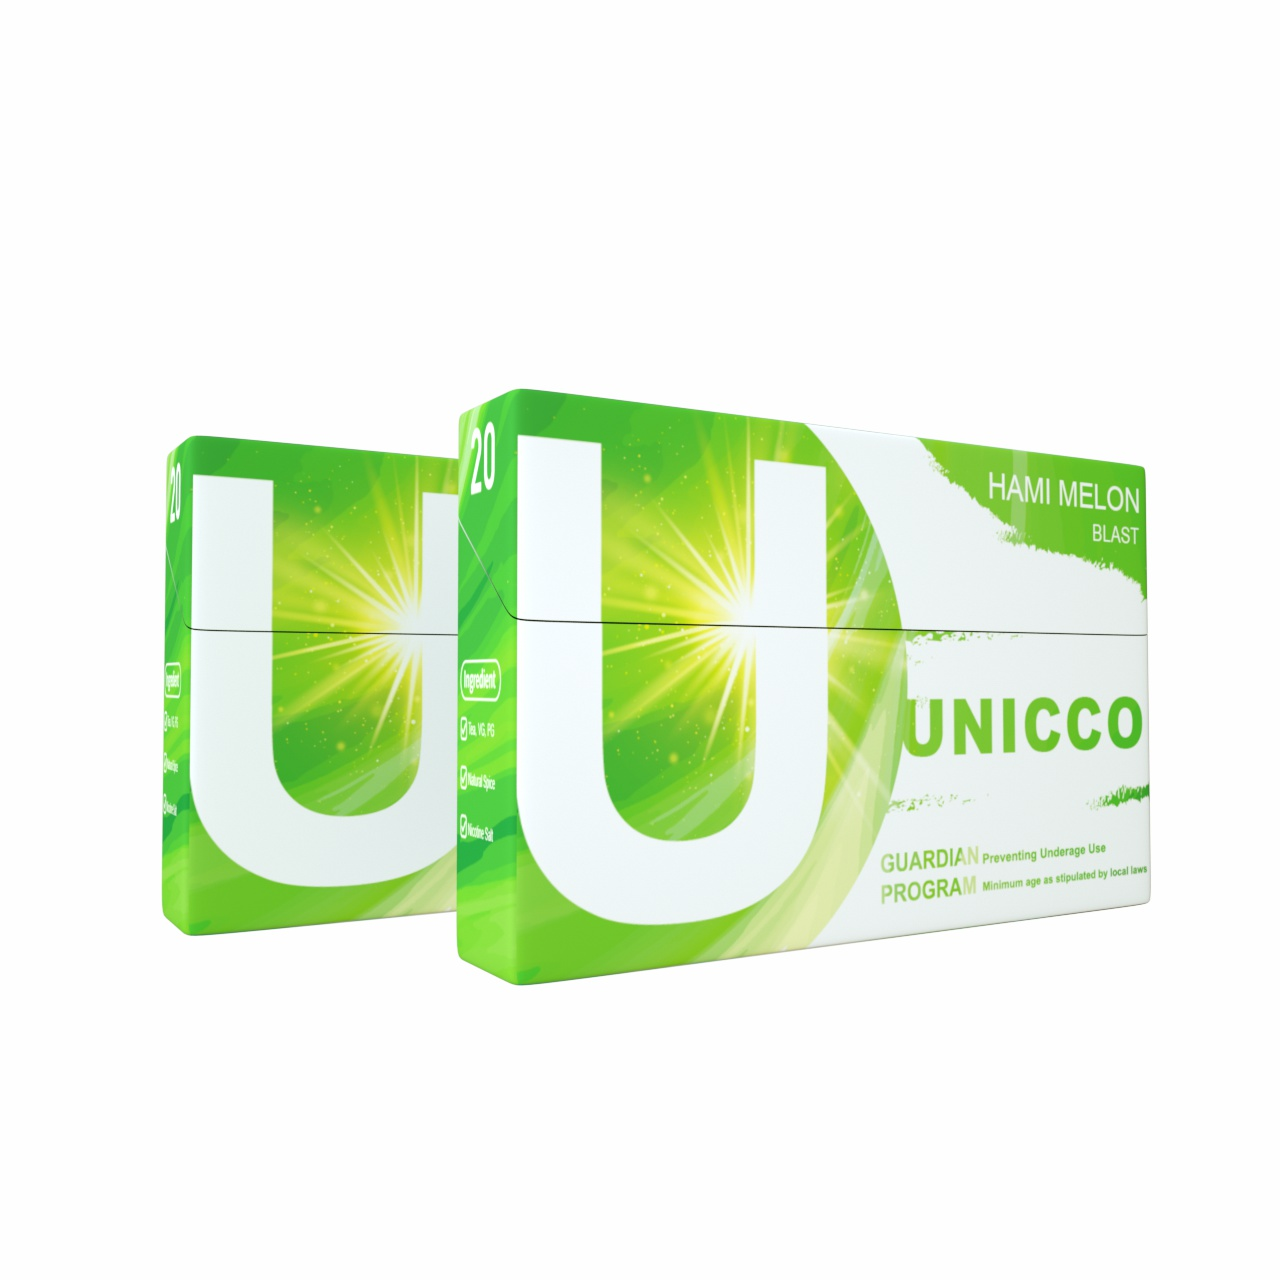 UNICCO-HEAT NO BURNING-HERBAL CIGARETTE-HAMI MELON-WITH CAPSULE